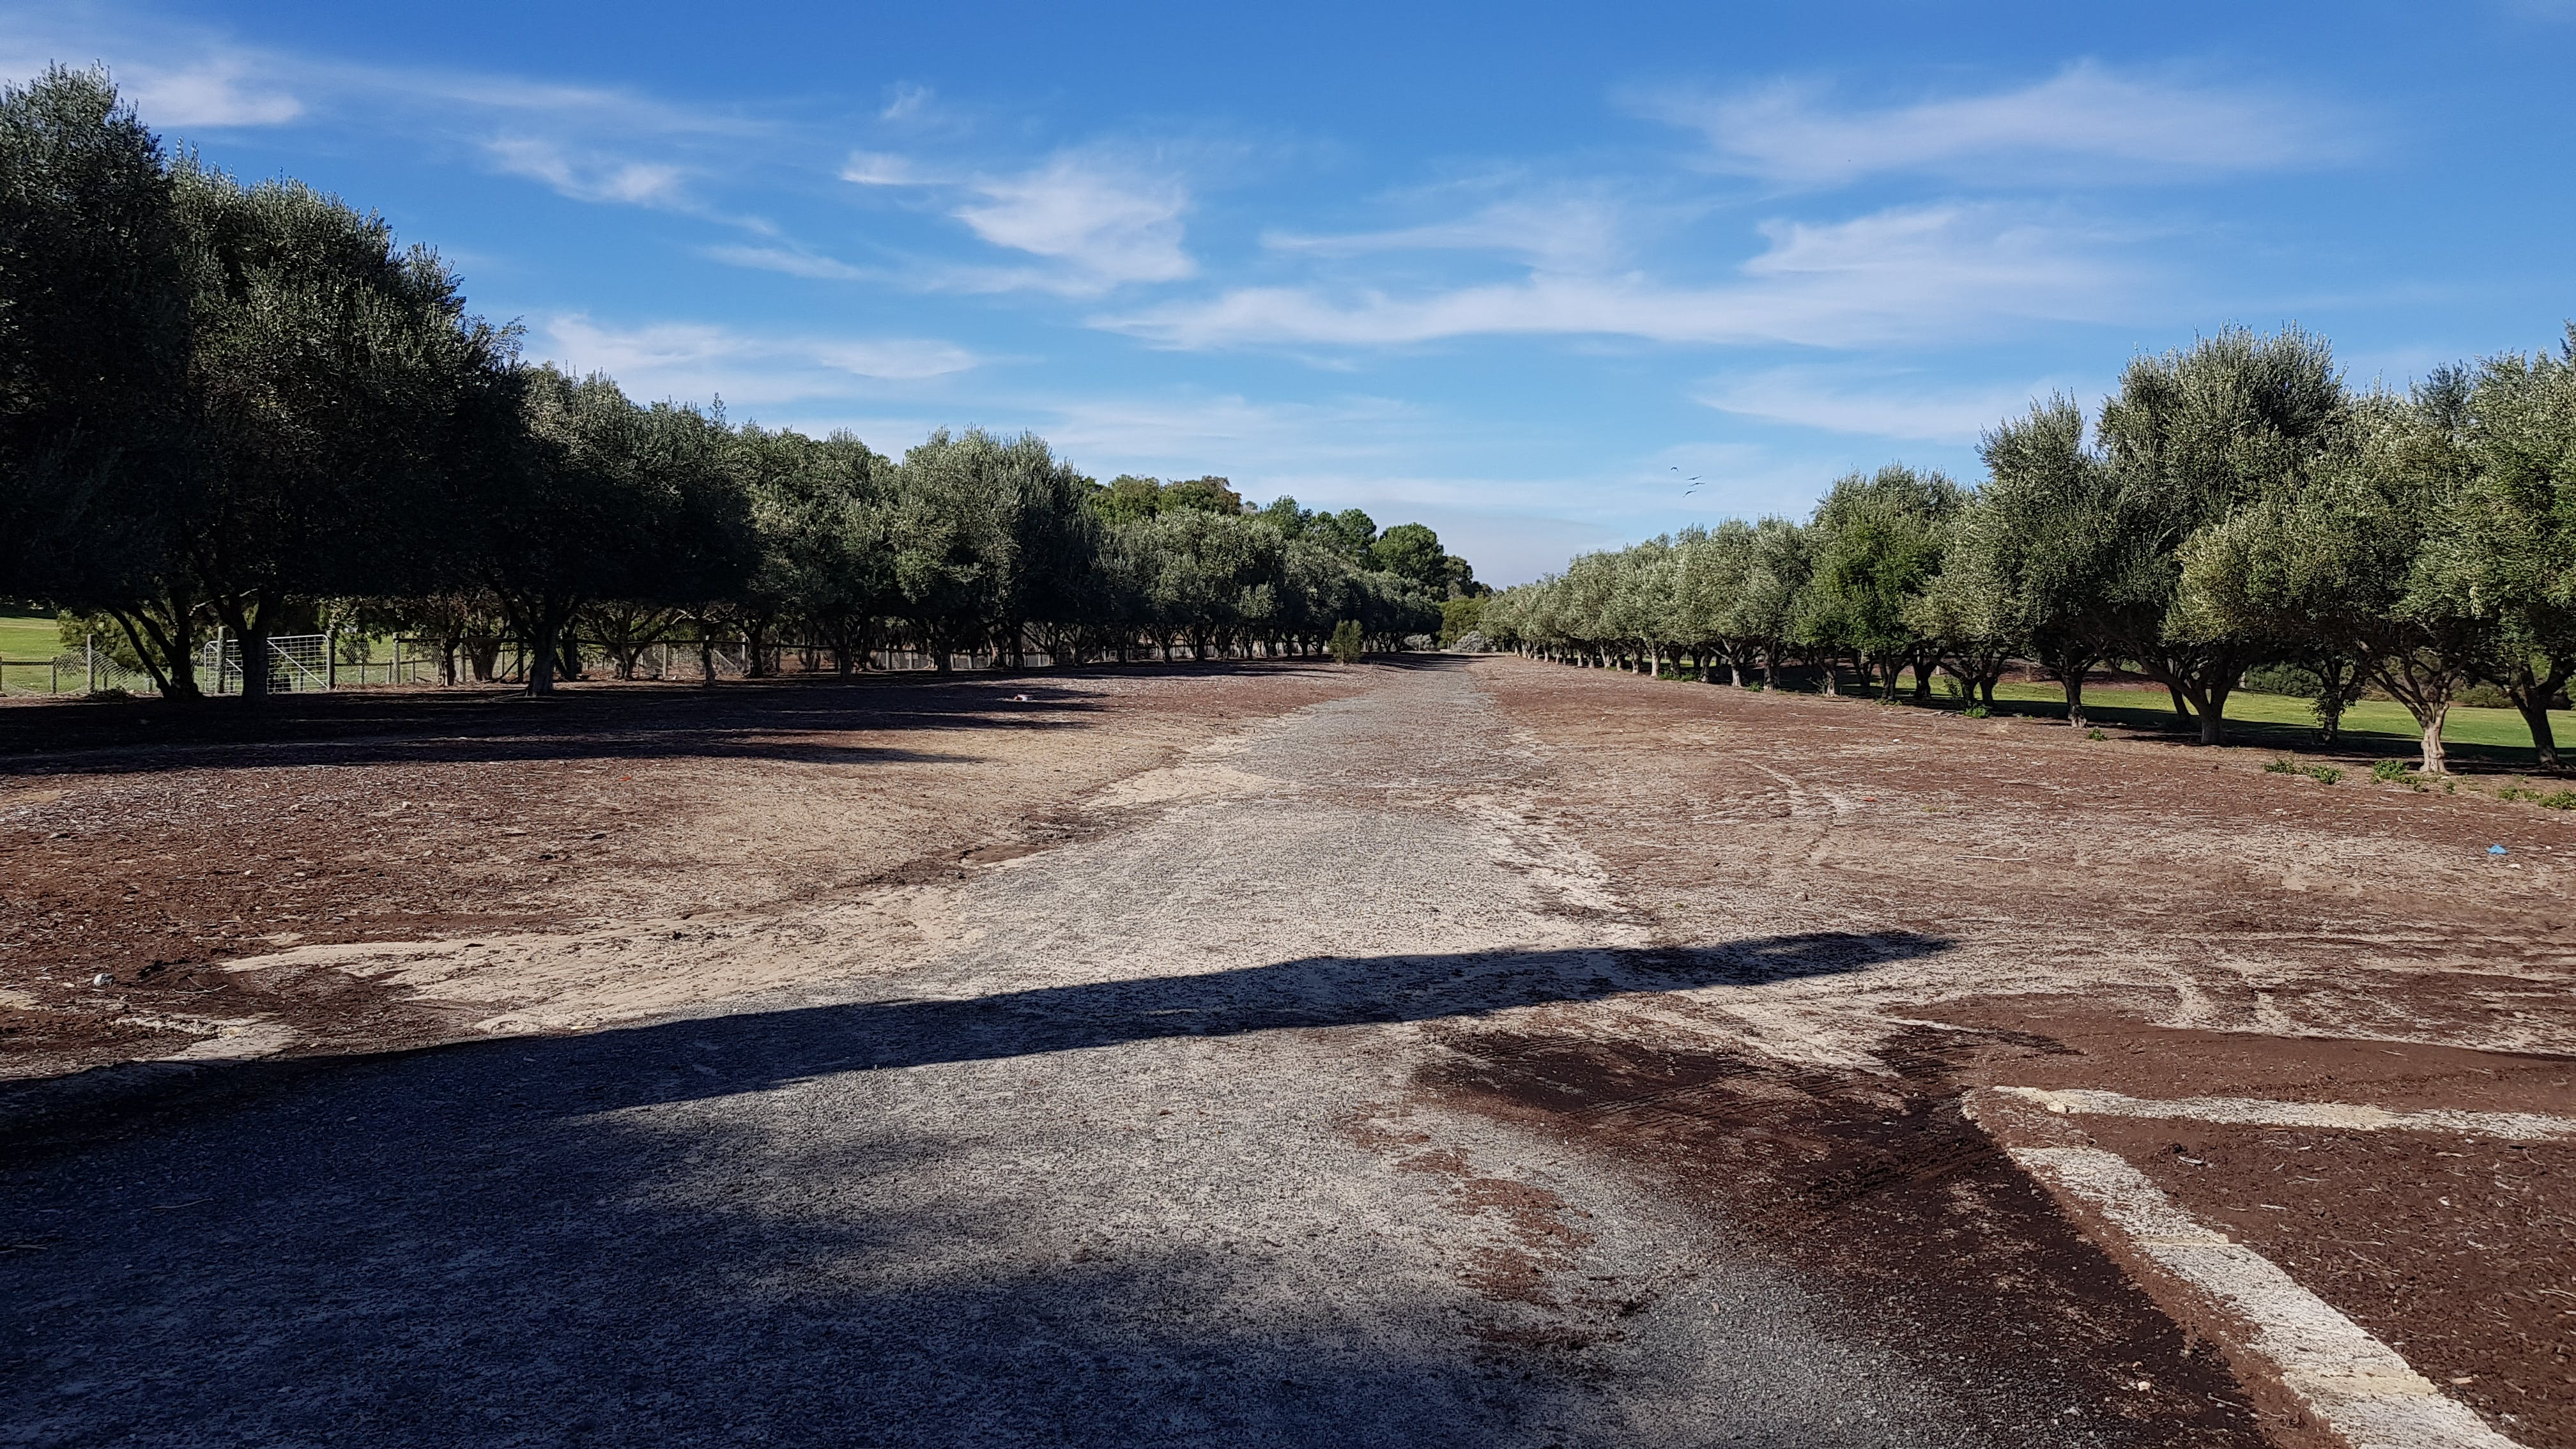 View to olive grove